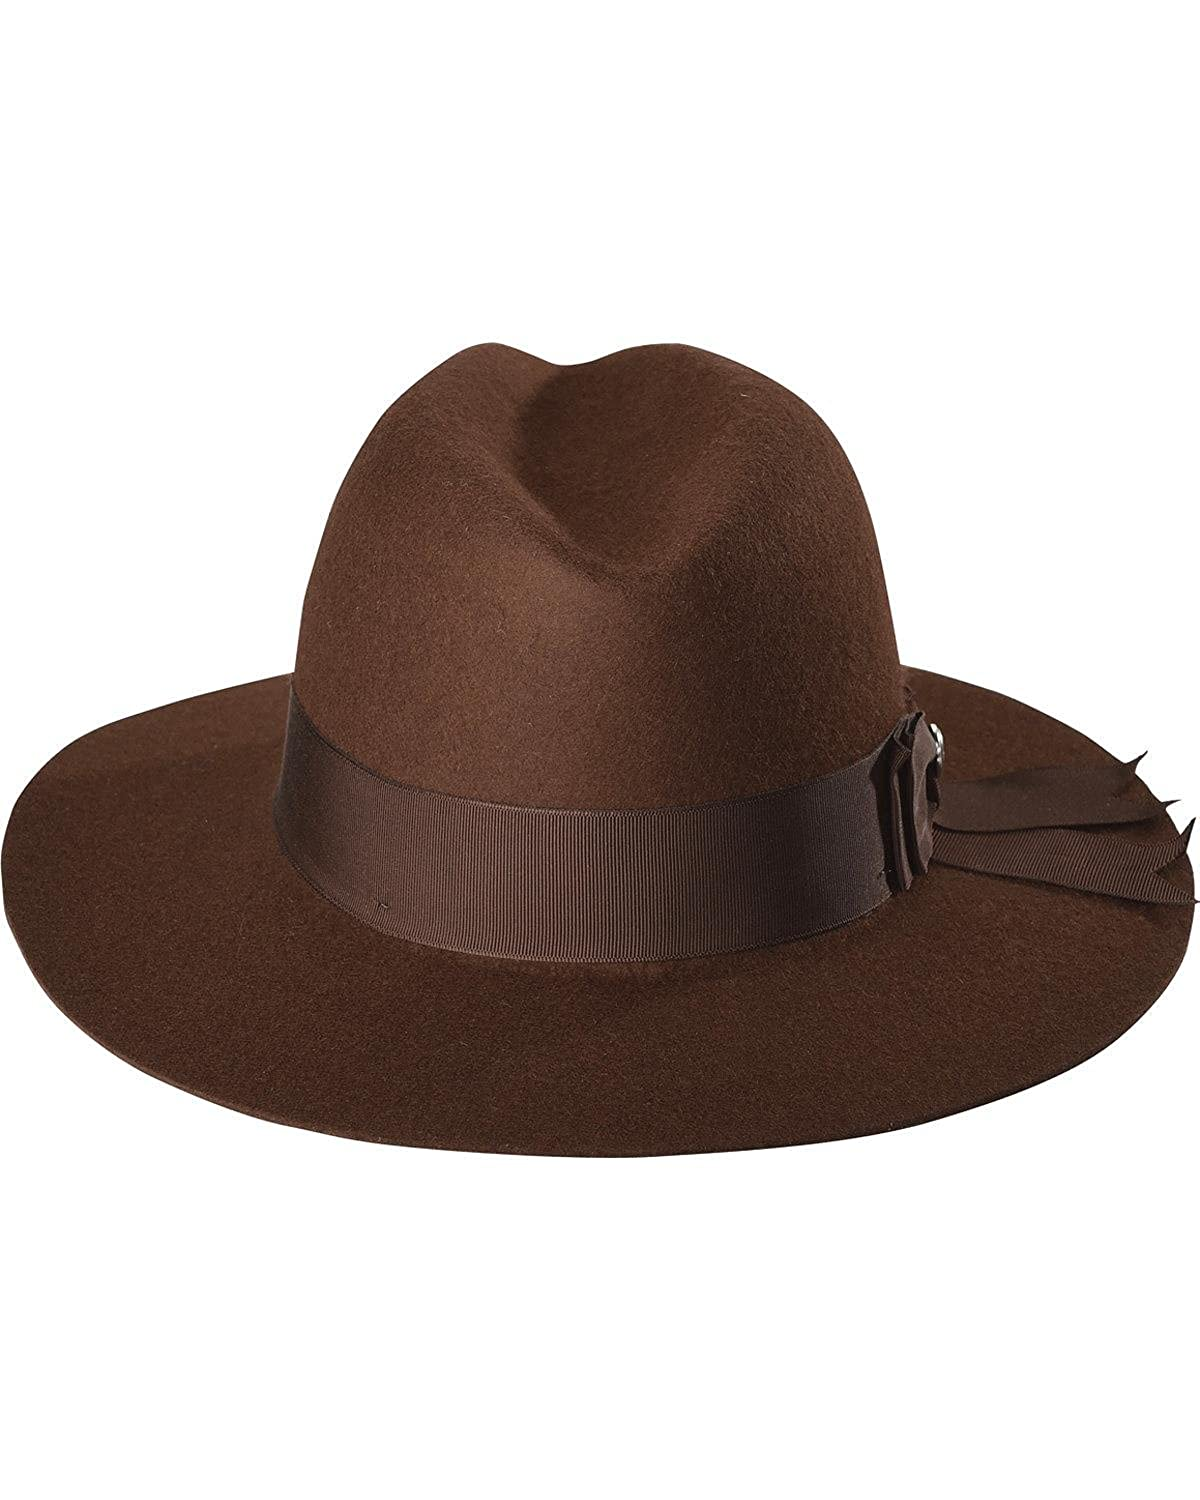 79dfc78e52f Stetson wildwood crushable wool cowboy hat christmas holiday jpg 1200x1500 Stetson  wildwood